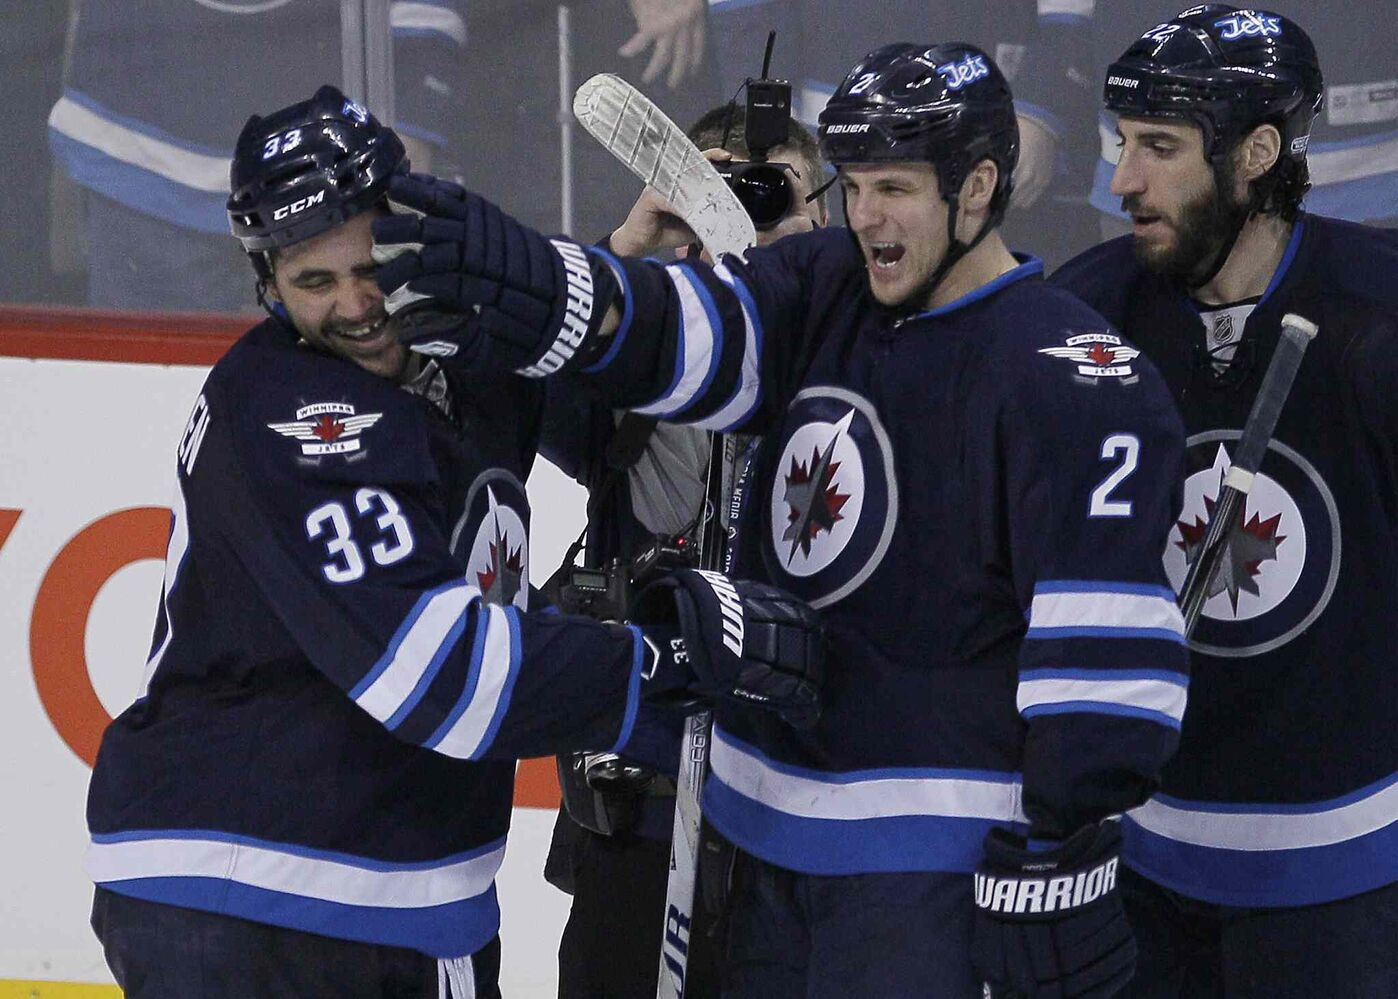 Winnipeg Jets' Dustin Byfuglien (33) and Adam Pardy (2) celebrate Byfuglien's winning overtime goal. The Jets beat the Toronto Maple Leafs 5-4 in Winnipeg on Saturday.